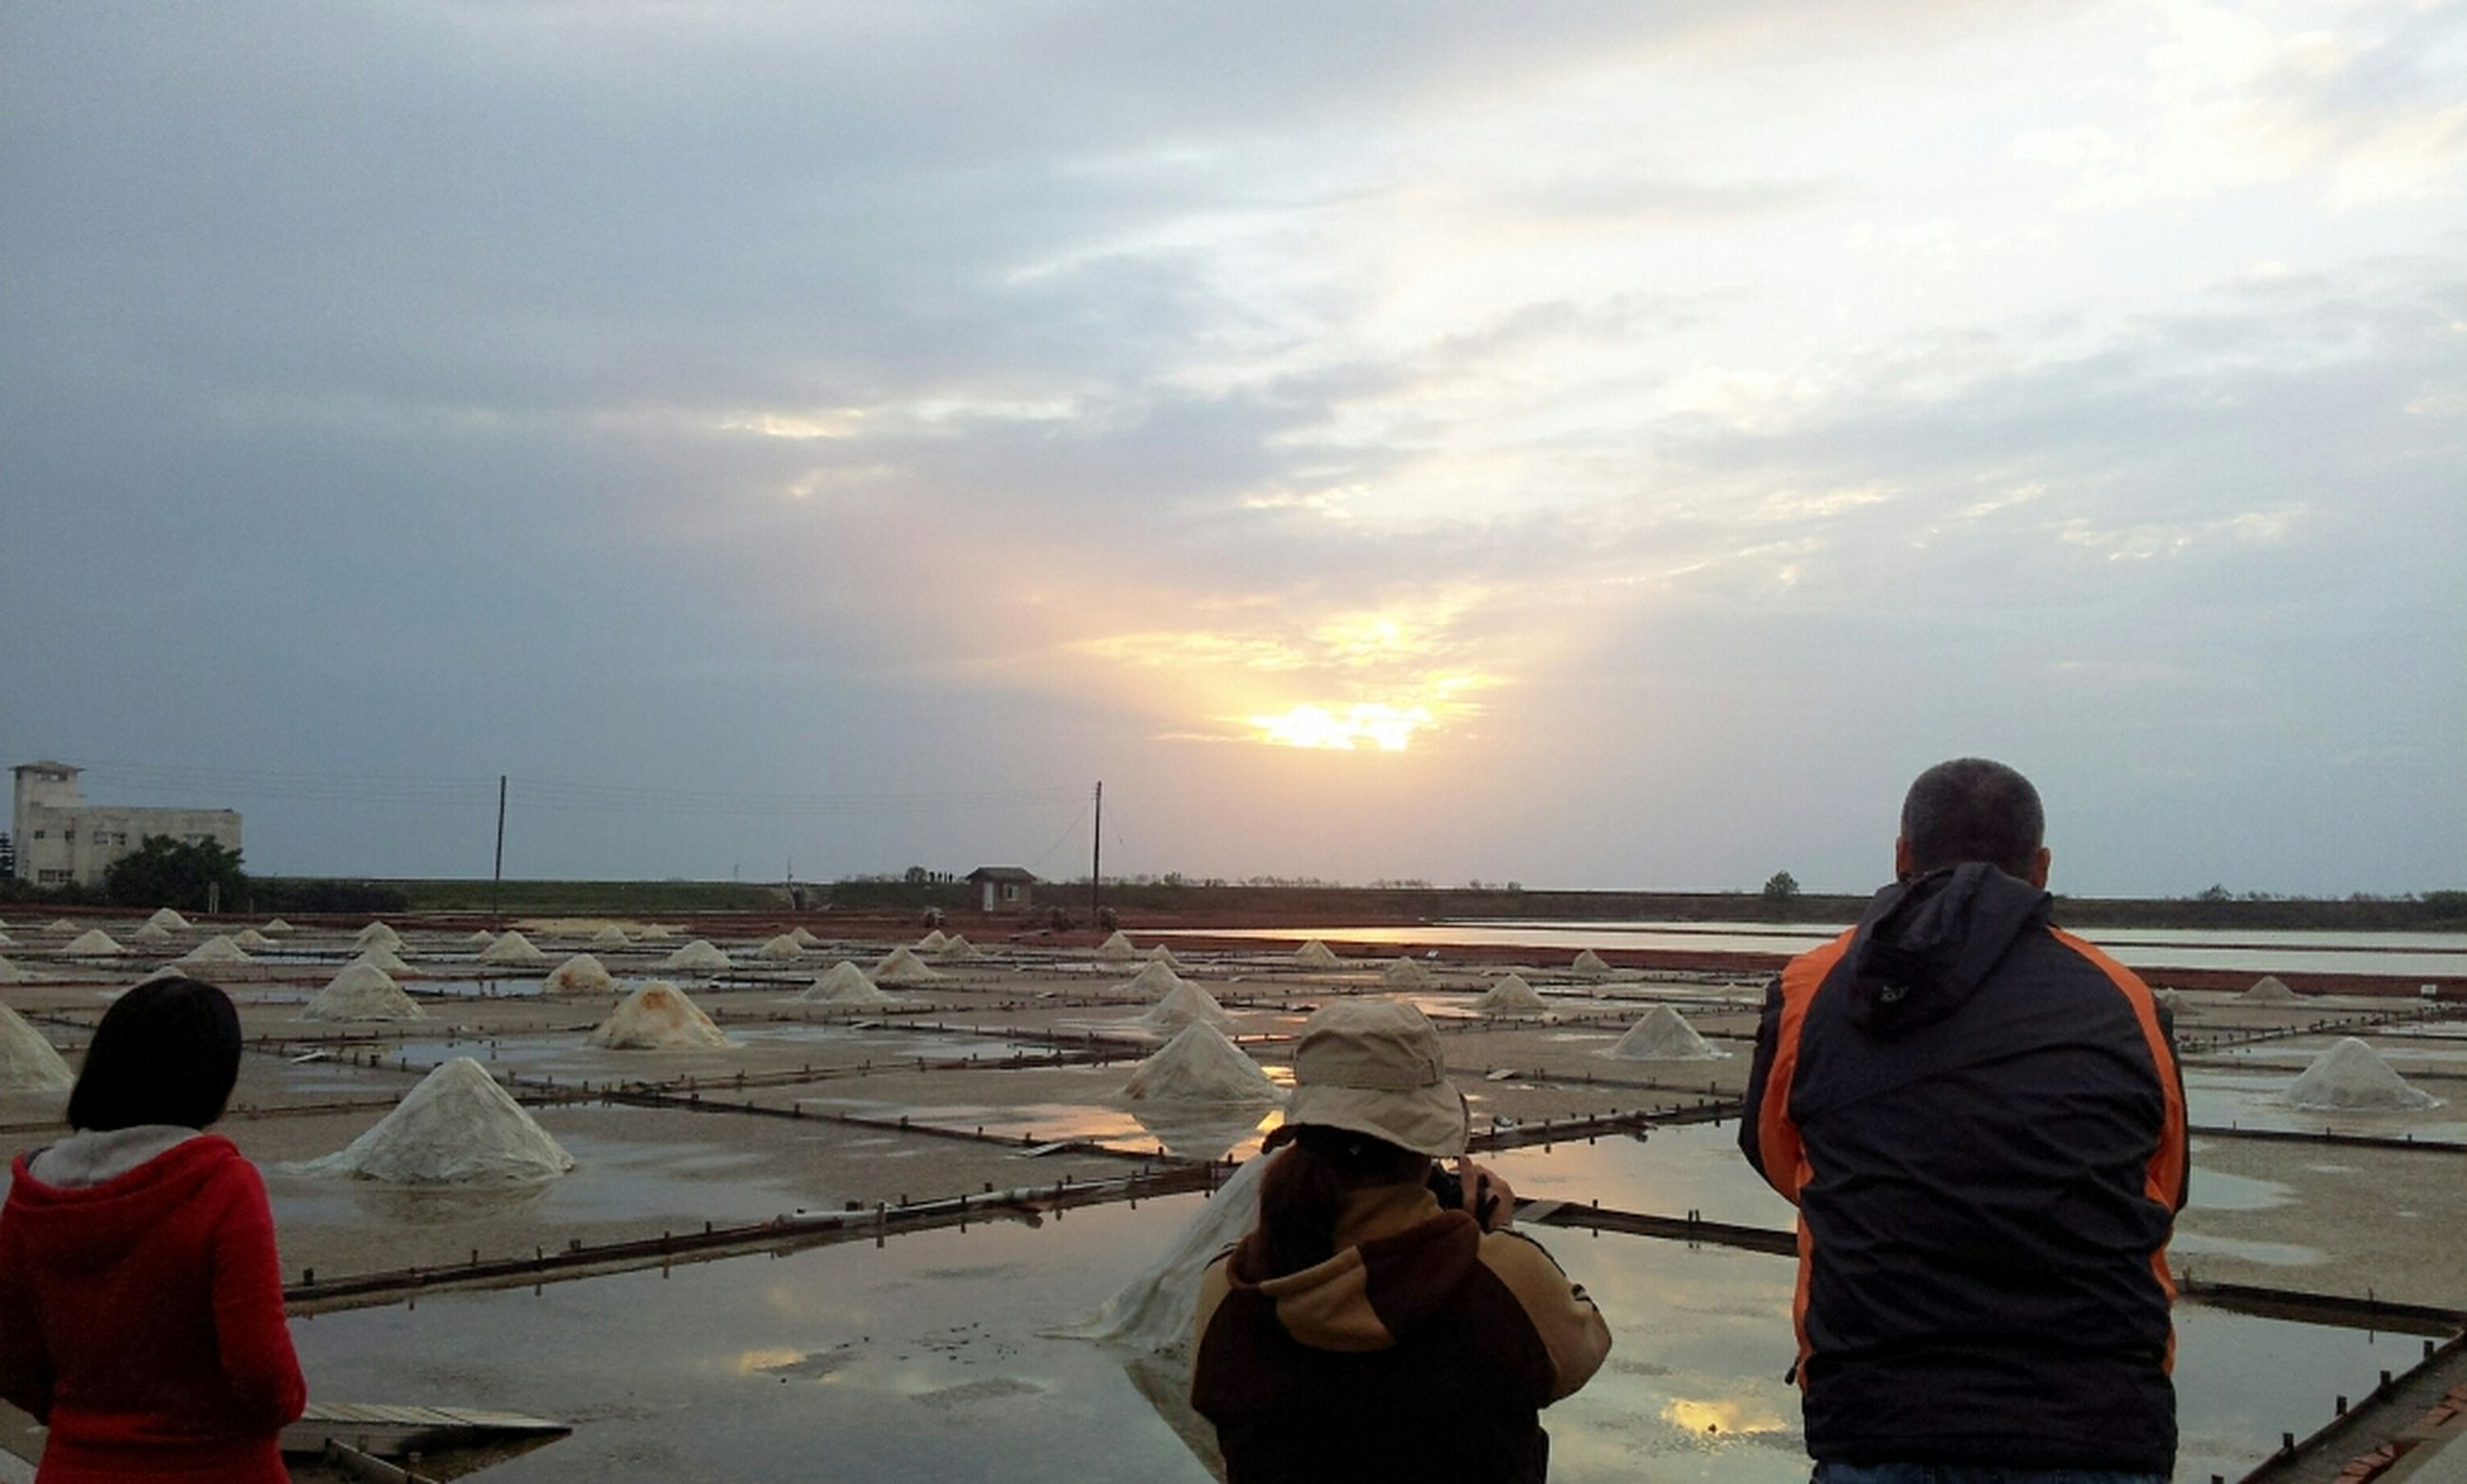 lifestyles, leisure activity, rear view, sky, men, standing, water, casual clothing, cloud - sky, person, sitting, togetherness, nature, three quarter length, warm clothing, sunset, looking at view